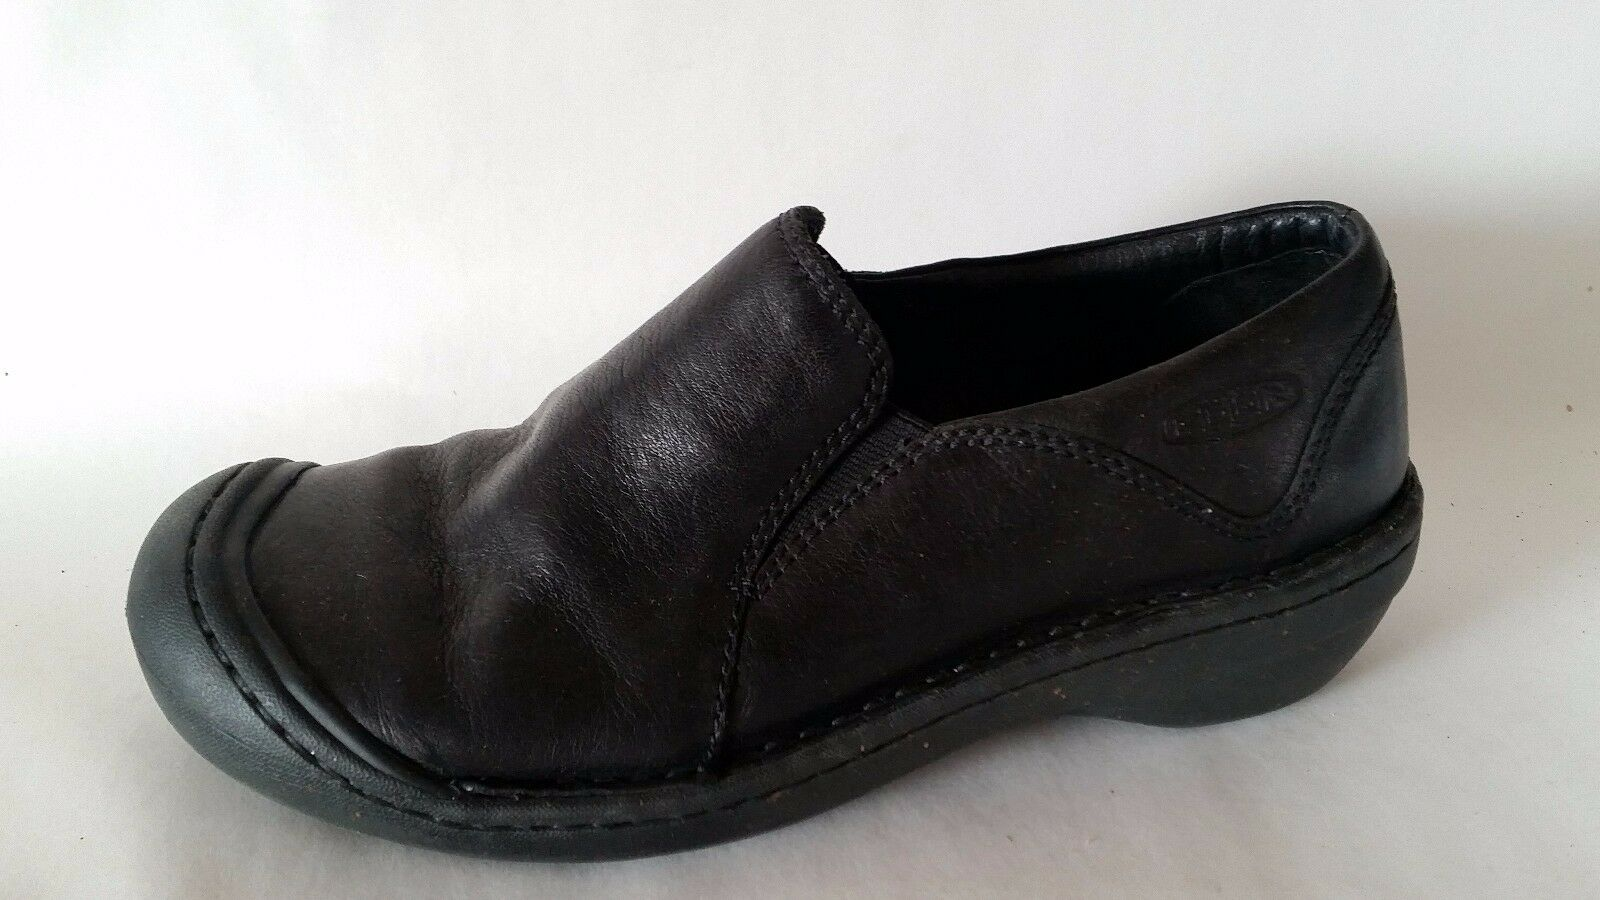 Keen Black Womens 6.5 M Leather Slip On Clogs Casual Walking shoes Loafers Work